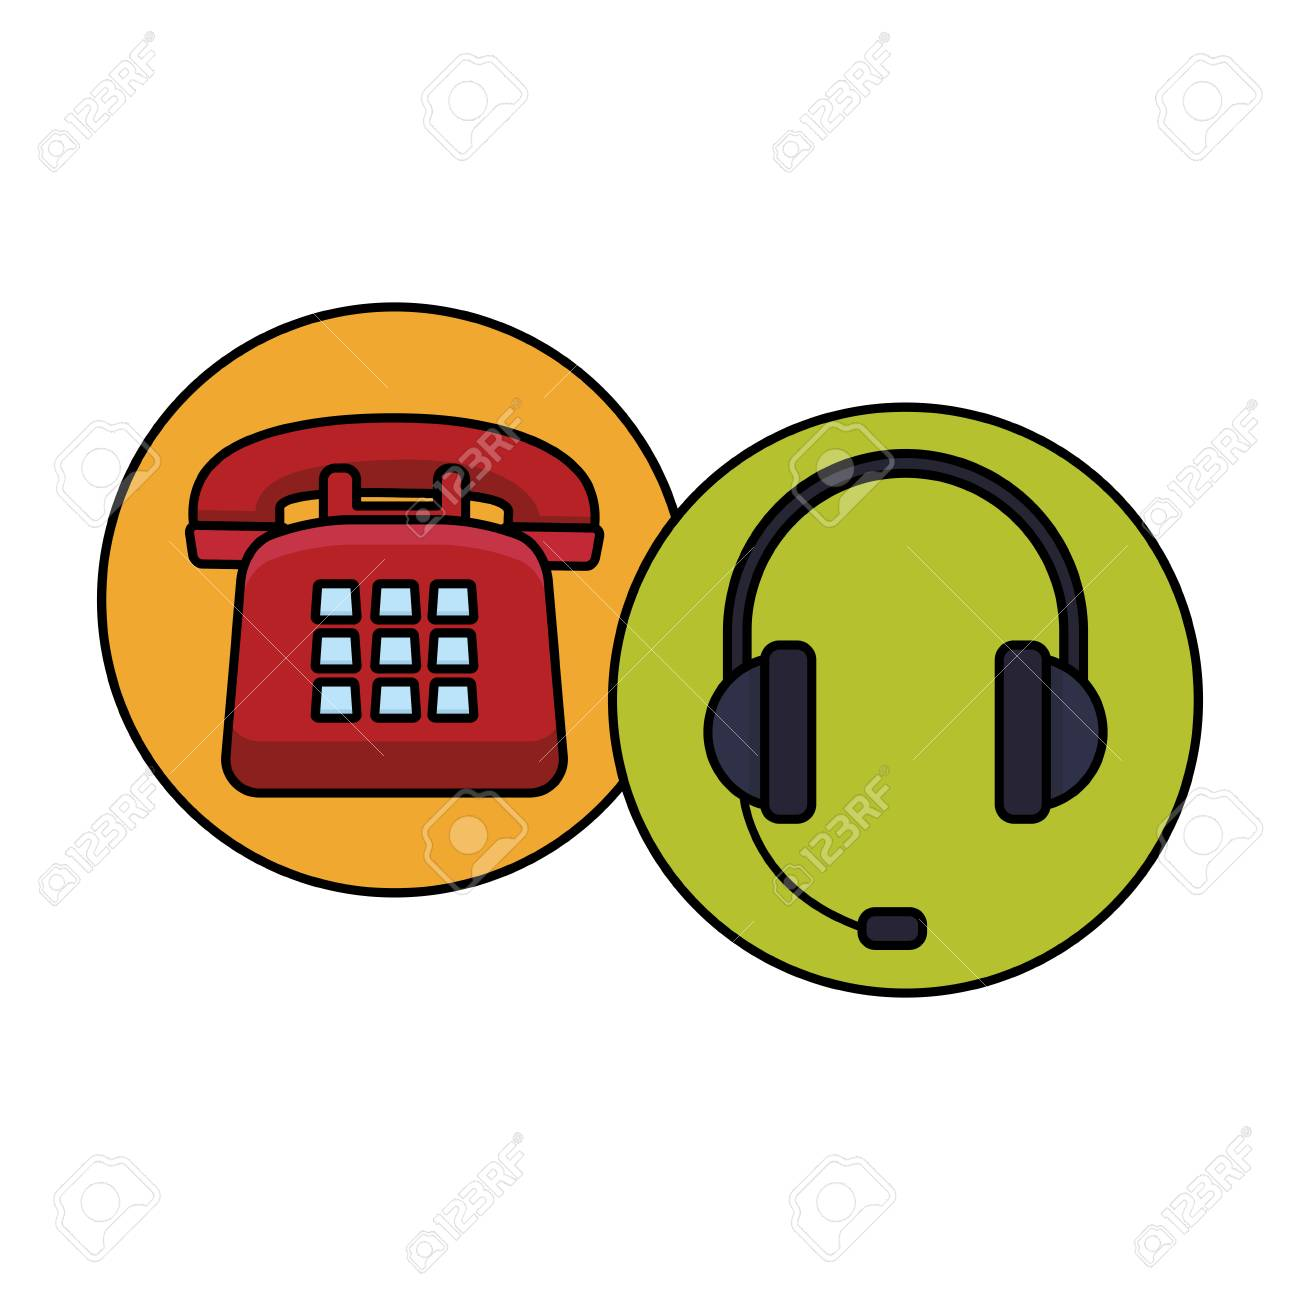 Telephone And Headset Assistance Round Icon Colorful In White Royalty Free Cliparts Vectors And Stock Illustration Image 127132987